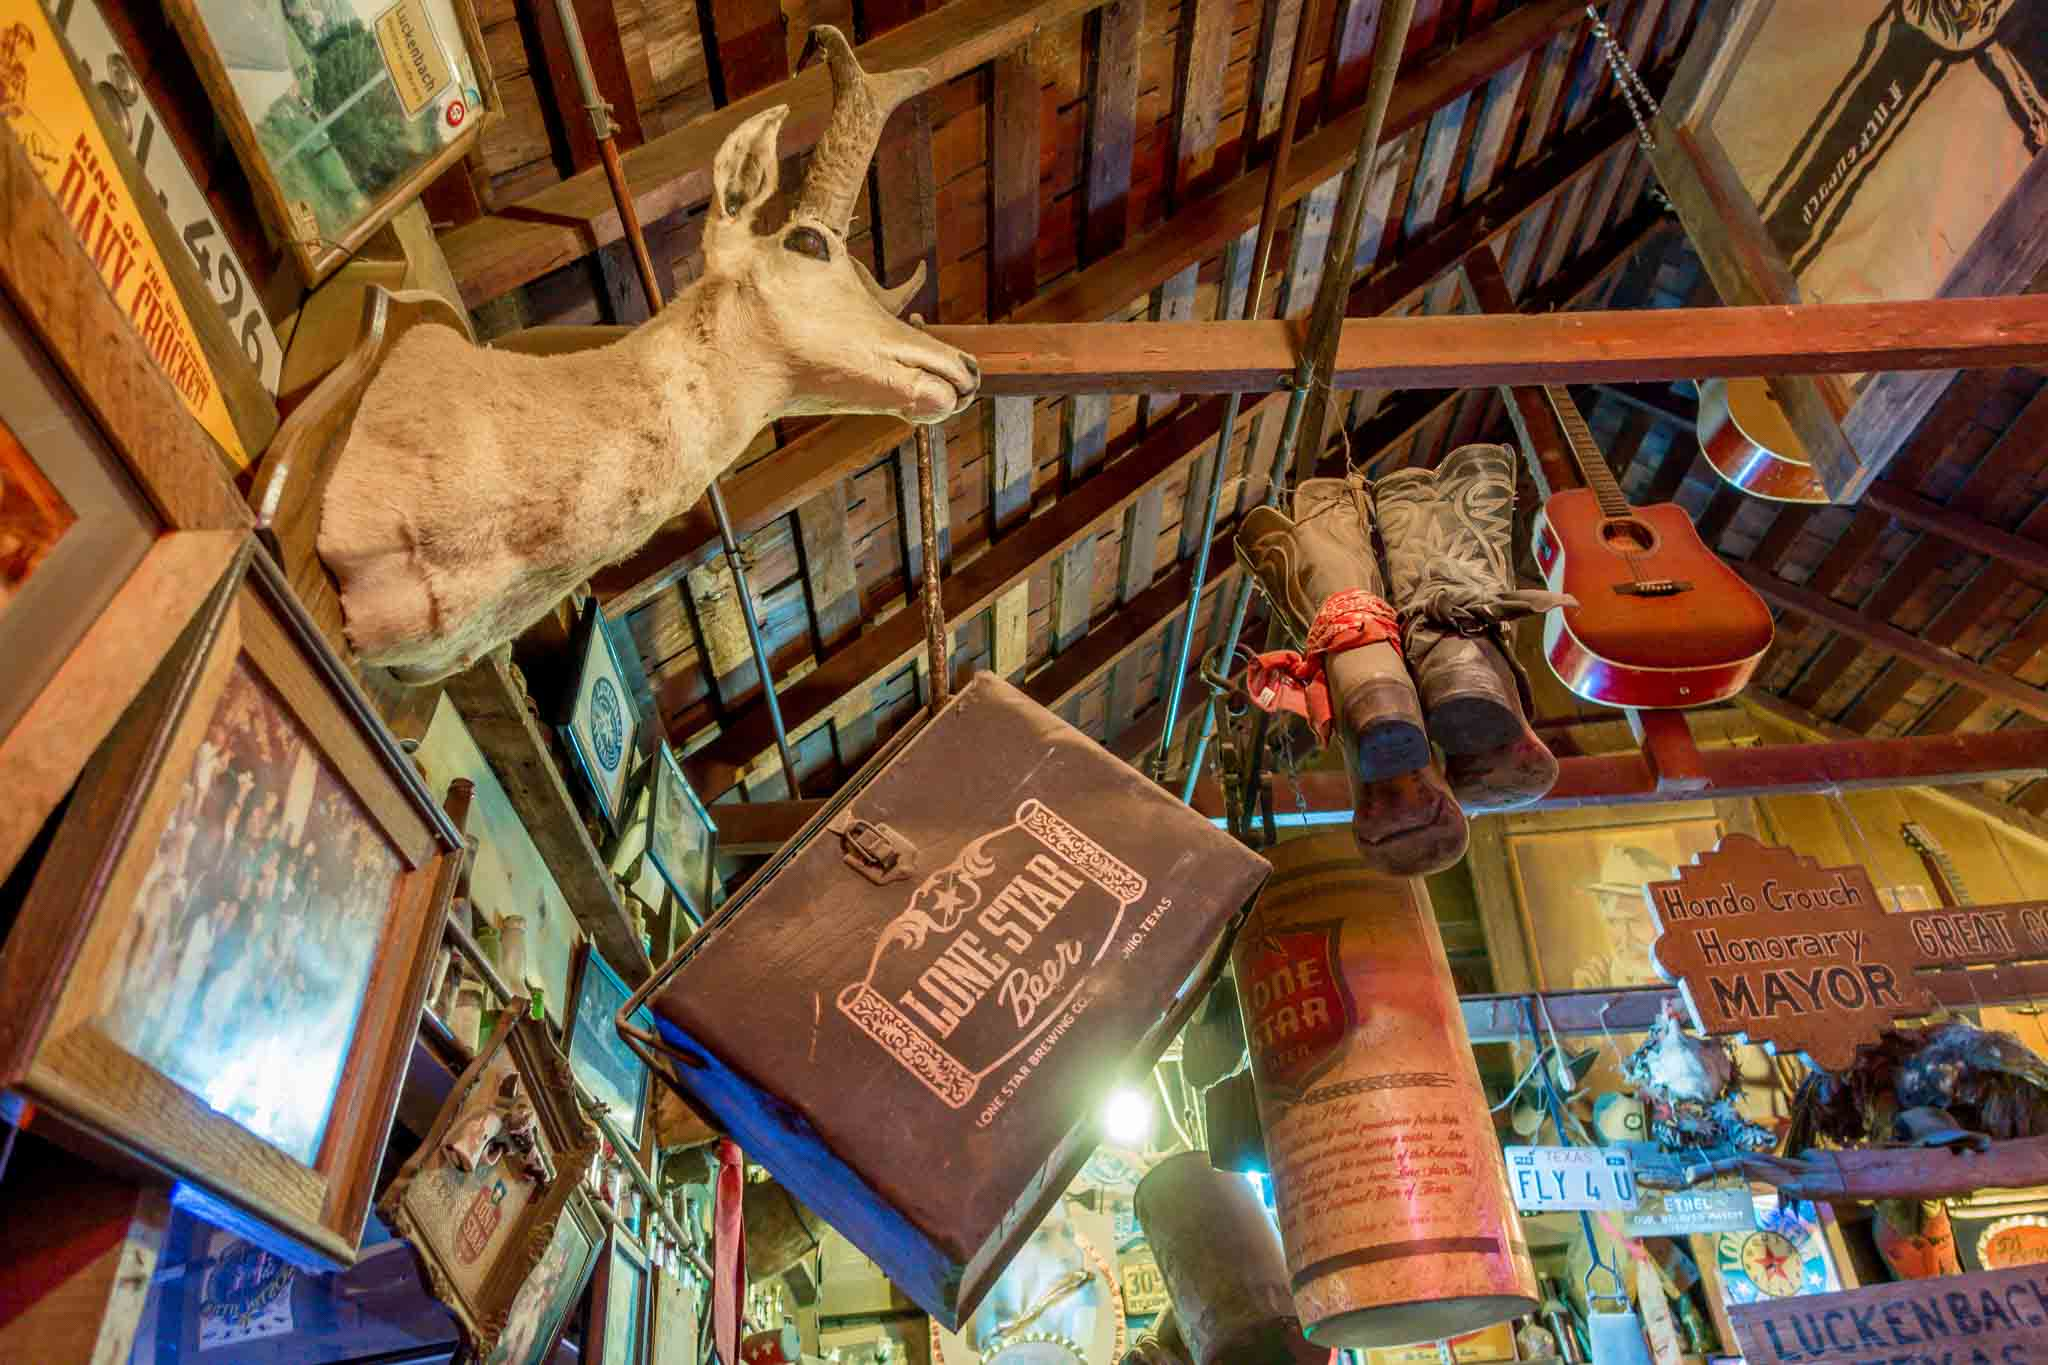 Music memorabilia hanging from the ceiling